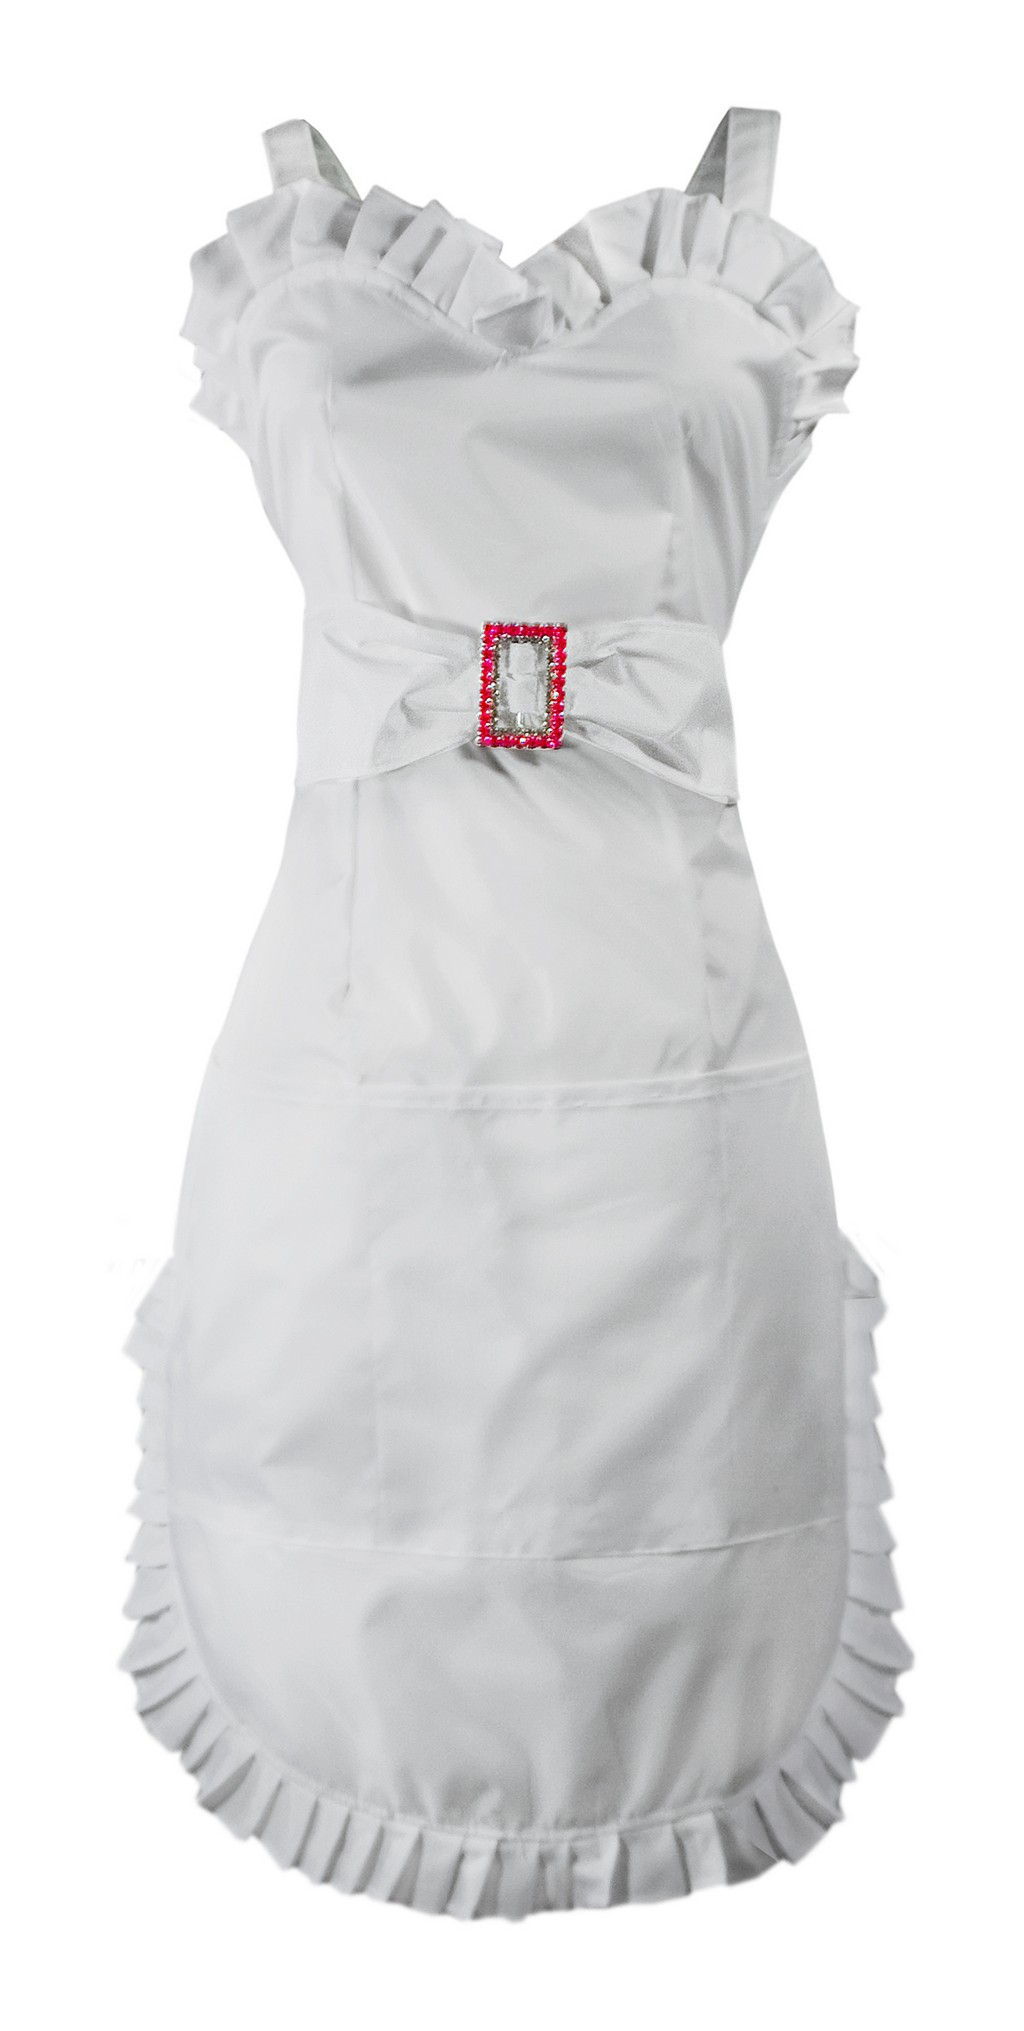 aprons for women, history of the apron, masonic aprons, novelty aprons for men